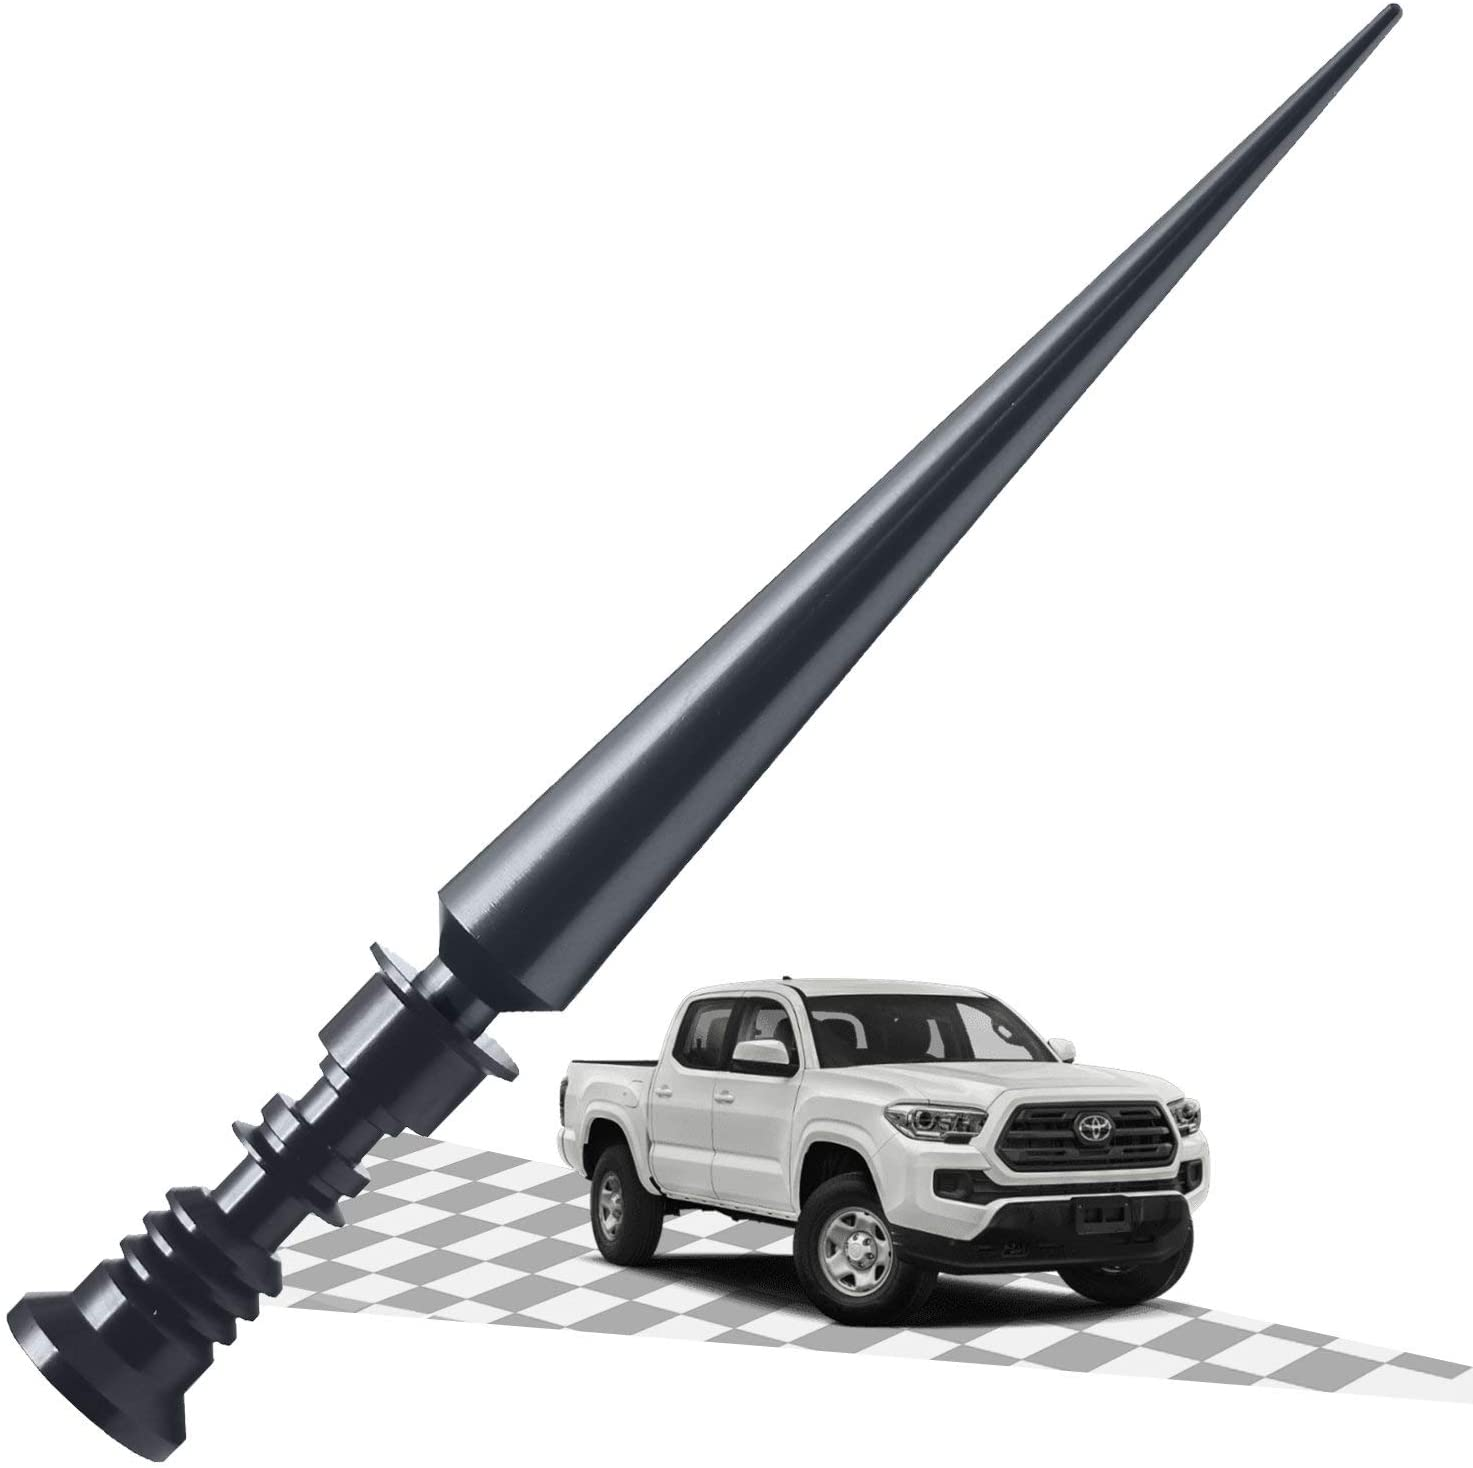 Elitezip Antenna Fit for Toyota Tundra 1999-2018 | Optimized AM/FM Reception with Tough Material | 6.75 Inches - CarbonBlack